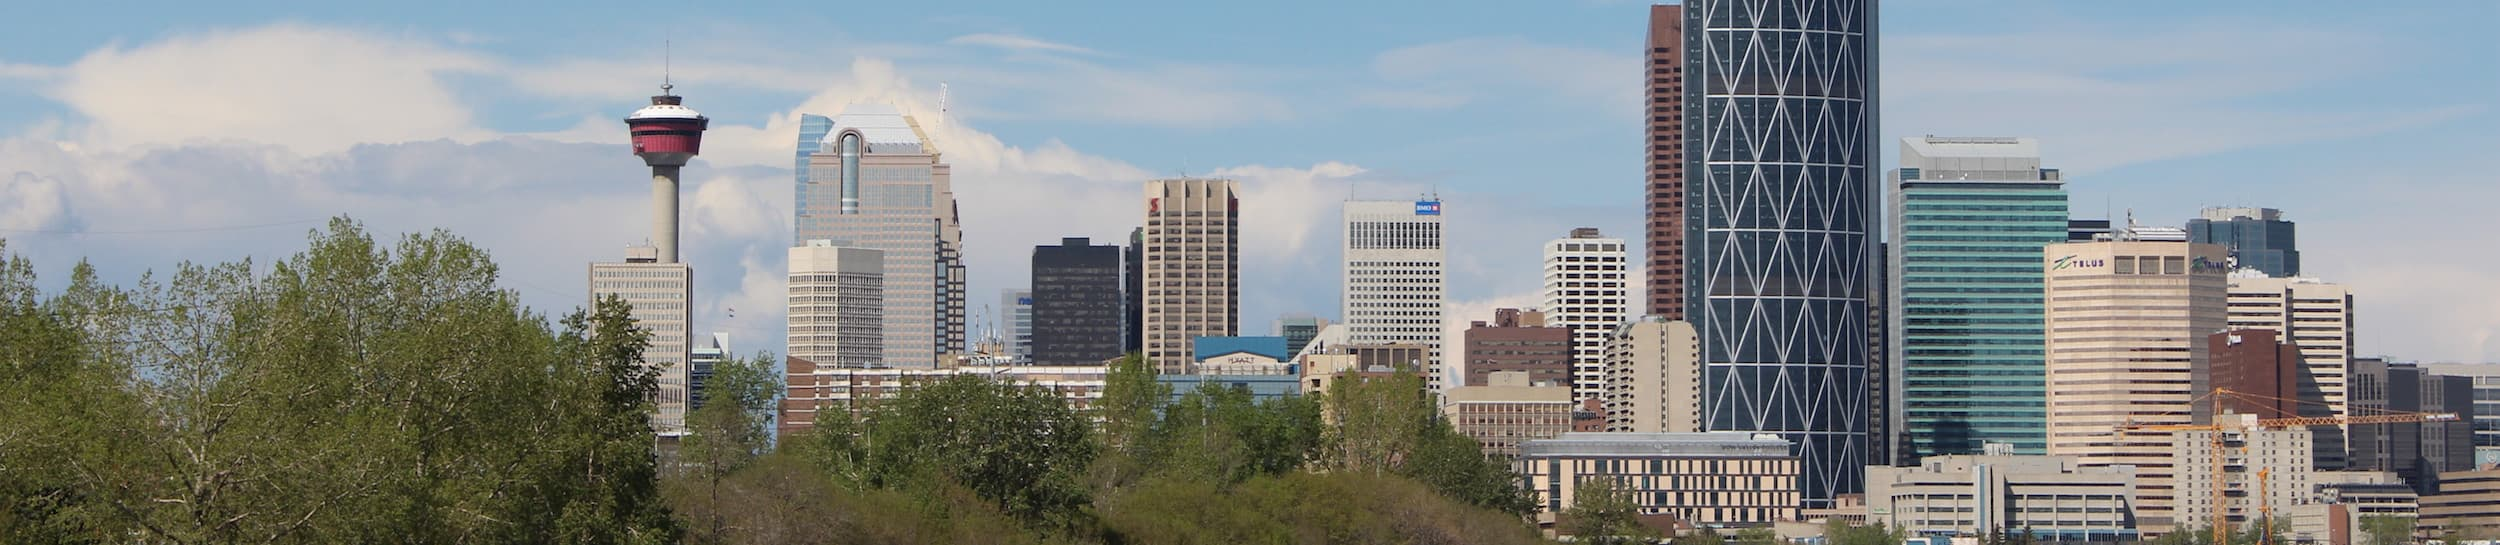 Pictured: skyline of Calgary